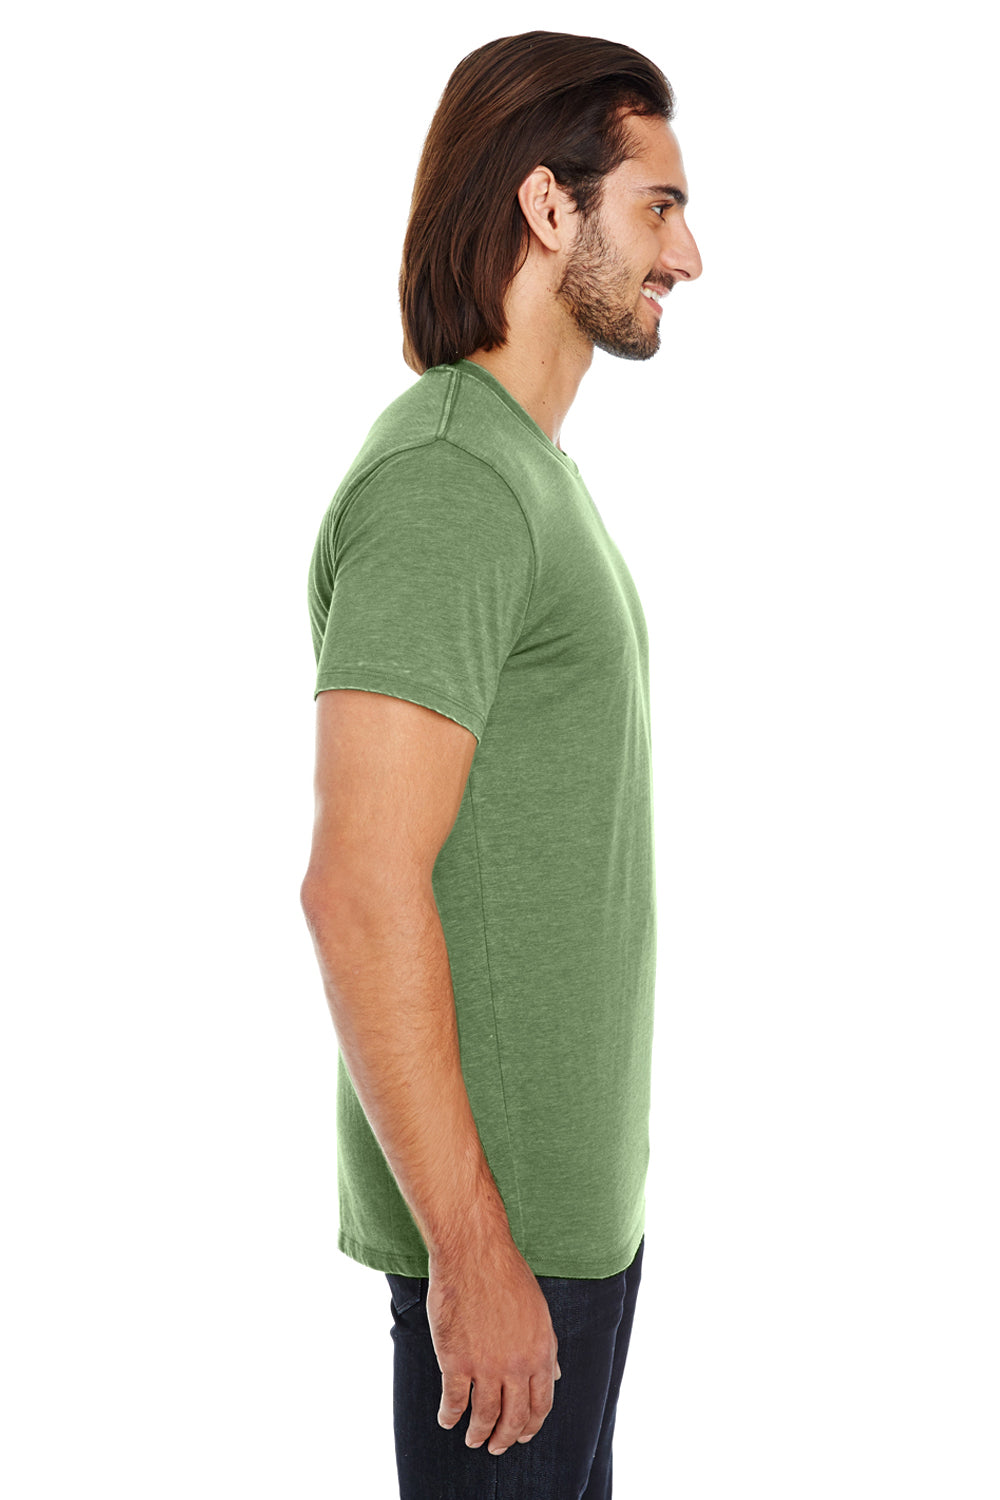 Threadfast Apparel 108A Mens Vintage Dye Short Sleeve Crewneck T-Shirt Grass Green Side